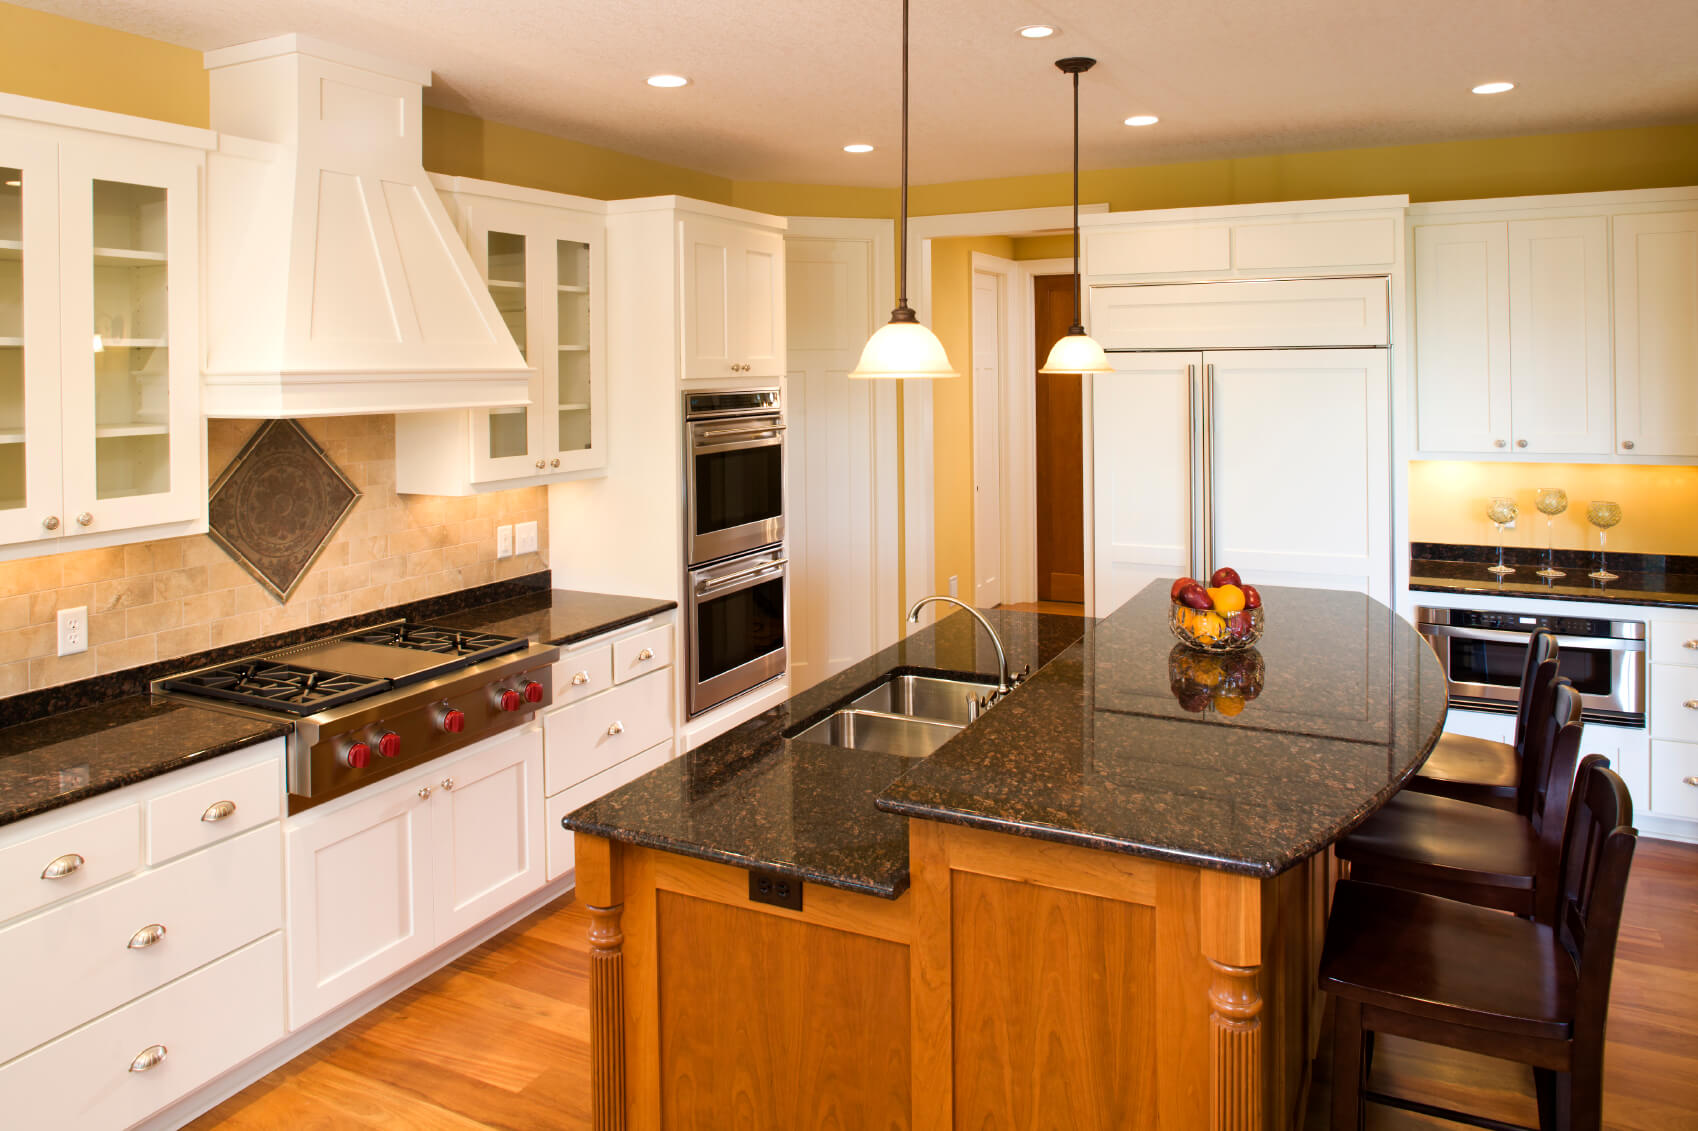 Here we have another two tiered island adding contrast to a kitchen with warm natural